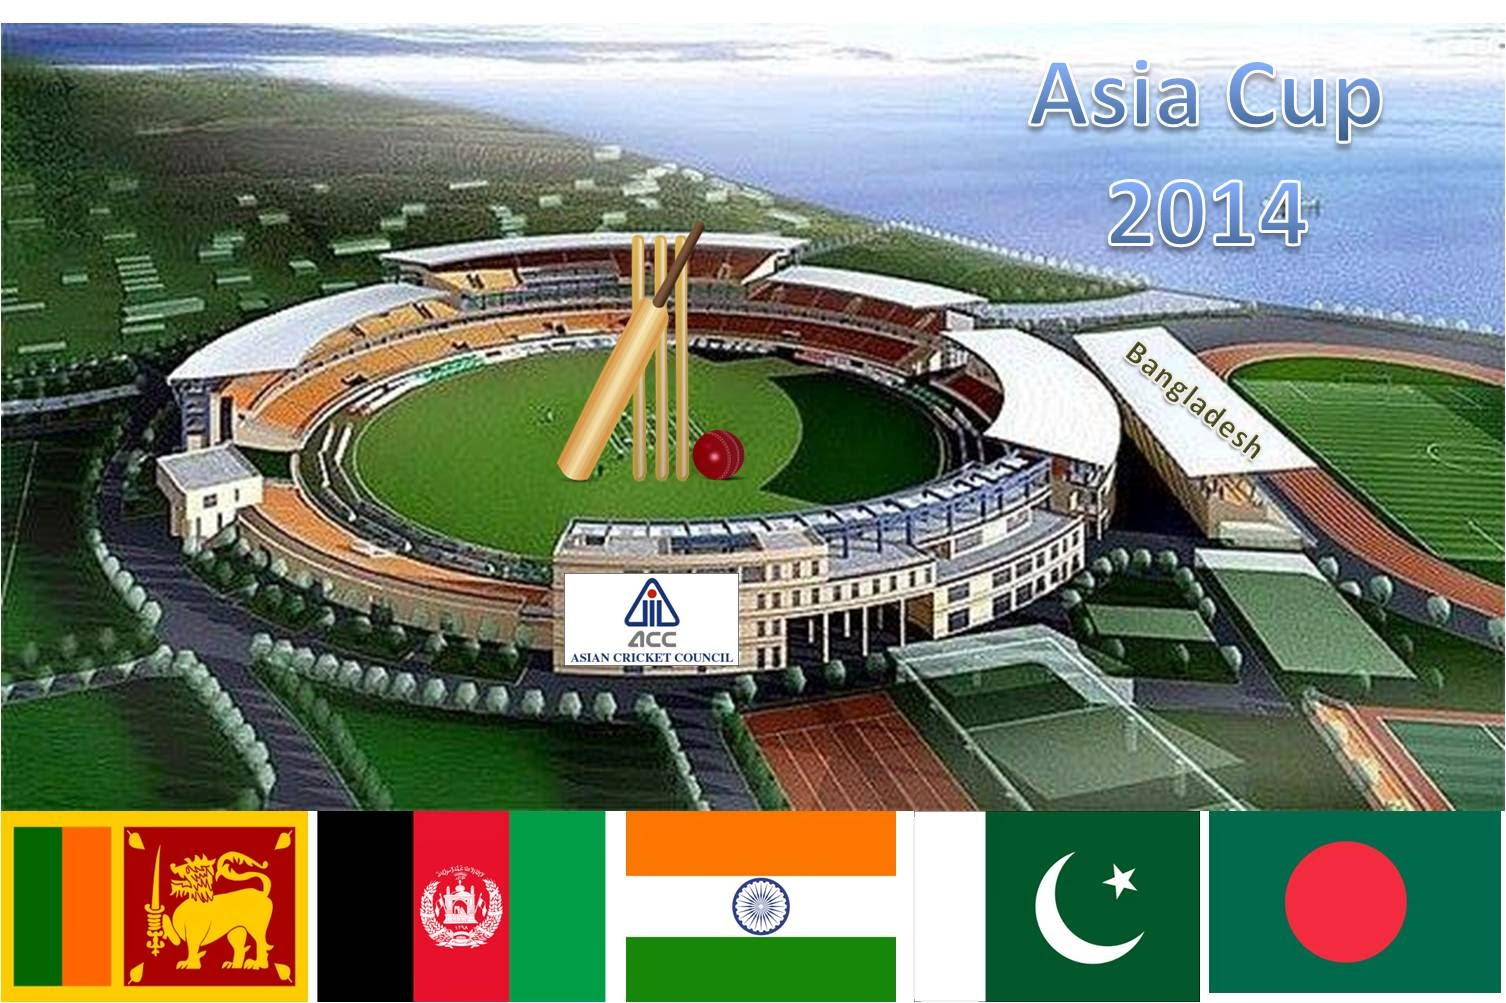 2014 Asia Cup One Day International: 5 Participants, 11 Matches, Bangladesh Hosted the Innings